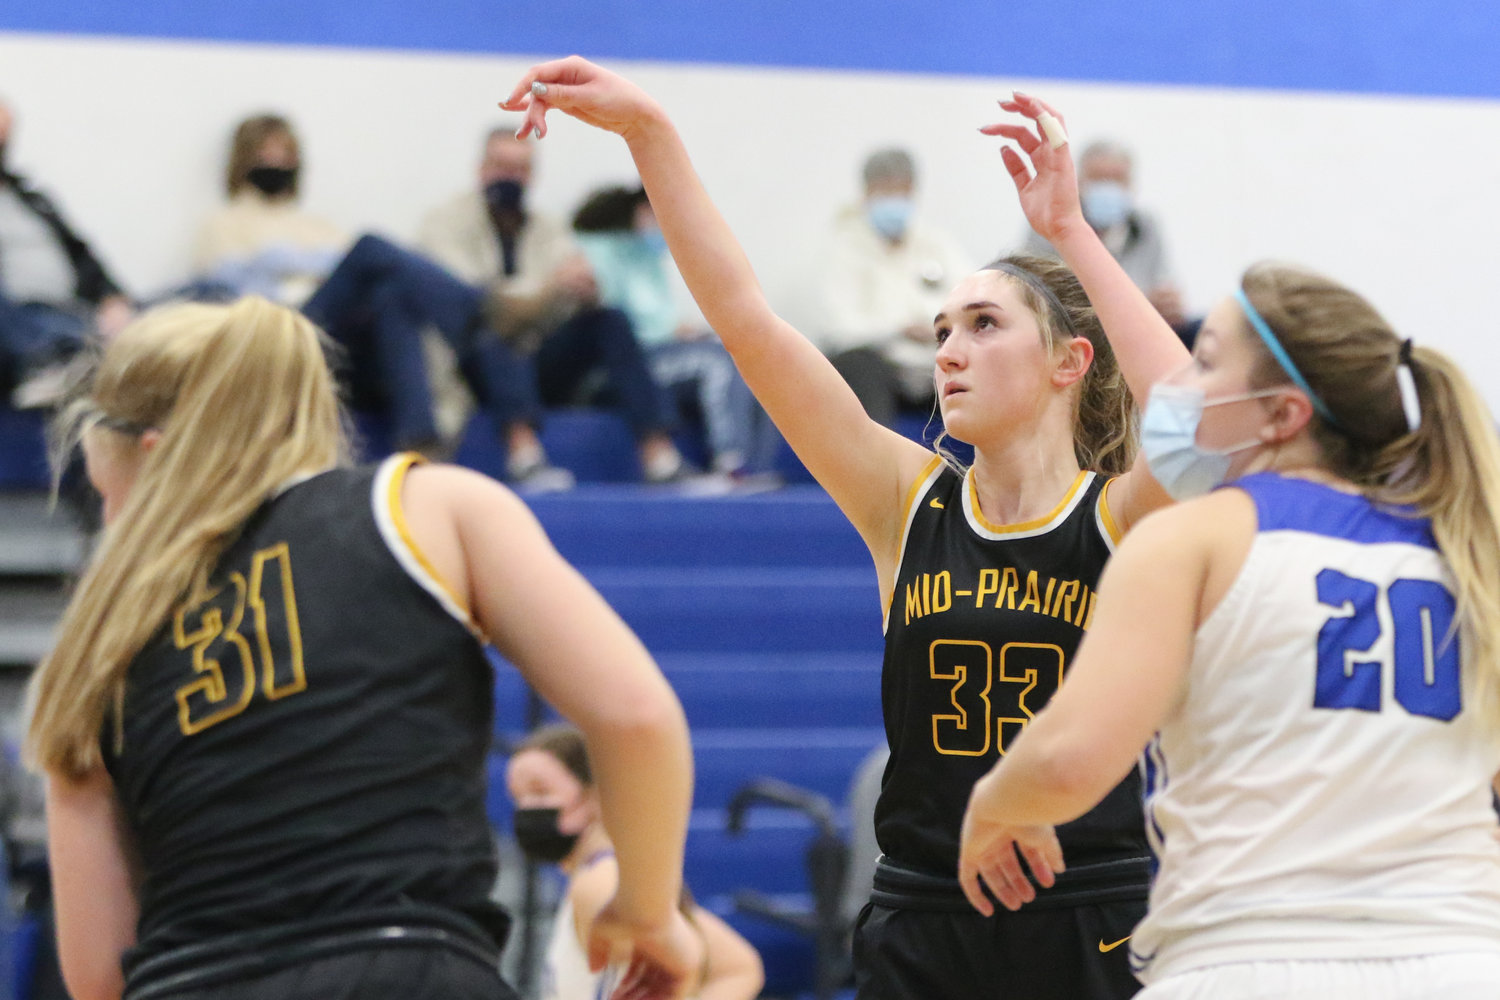 Most clutch performance: Maddie Nonnenmann at Monticello. The Mid-Prairie junior had 19 points and 11 rebounds in a 44-42 win over a Monticello team that finished the season 16-6.